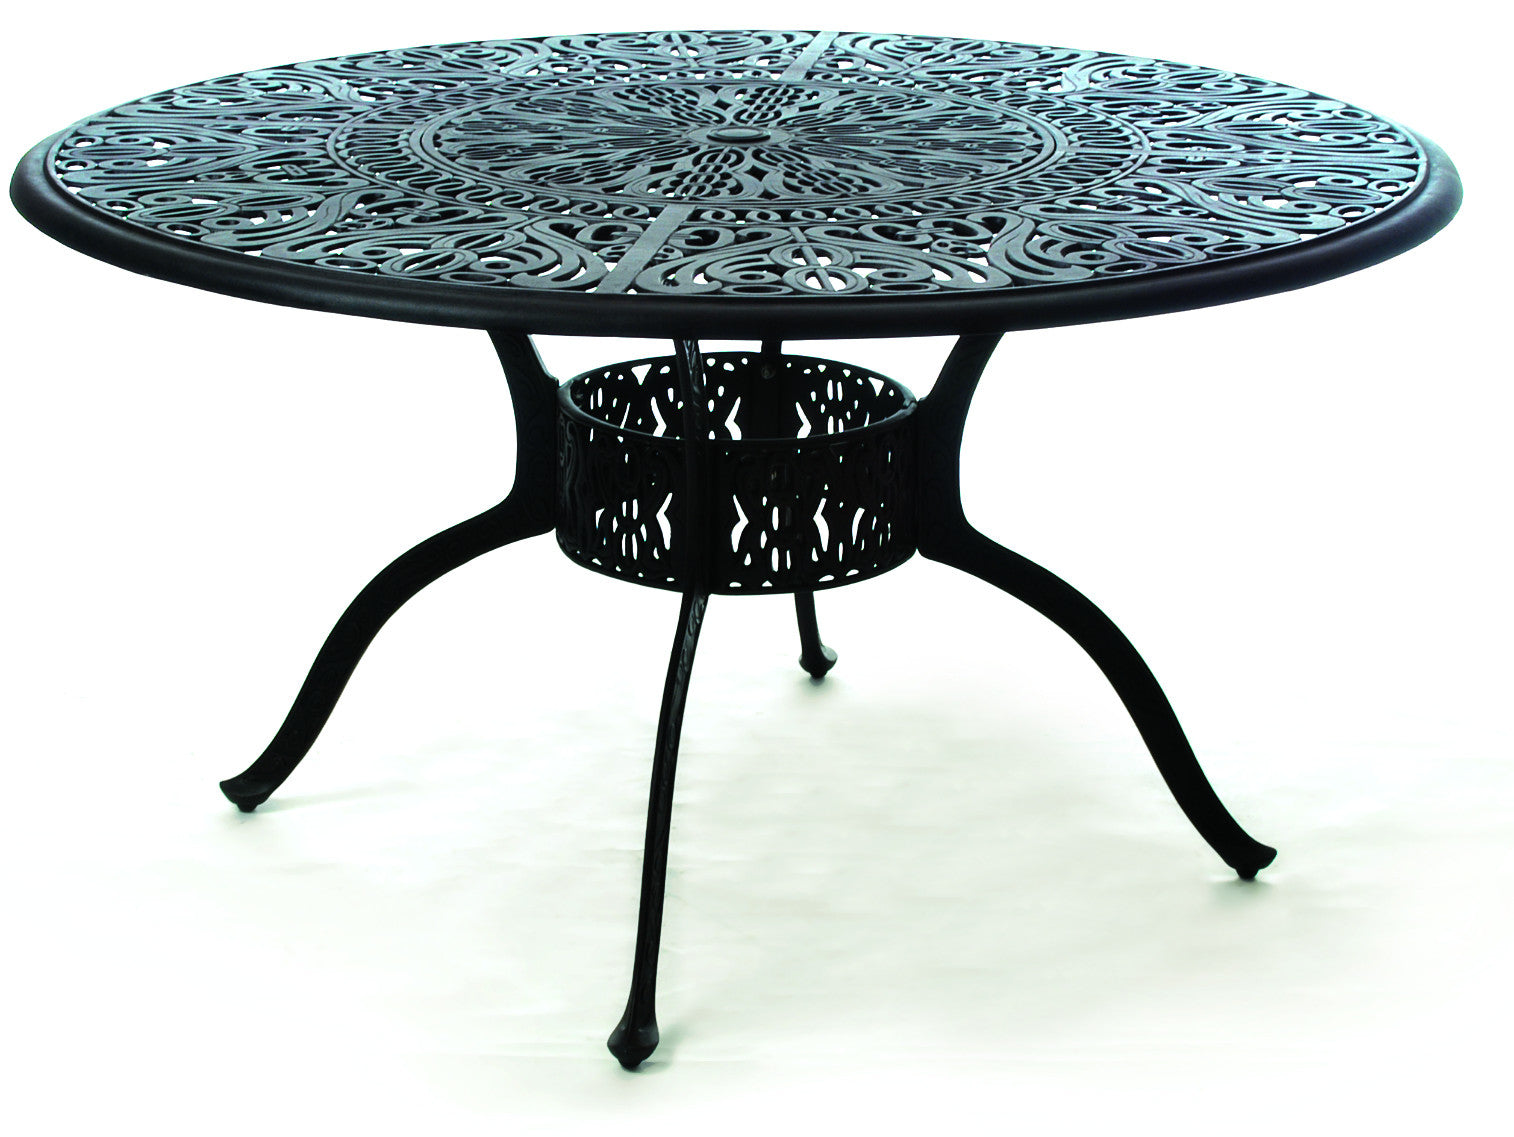 patio furniture best outdoor fire view table southern round beautiful hanamint tuscany pit of